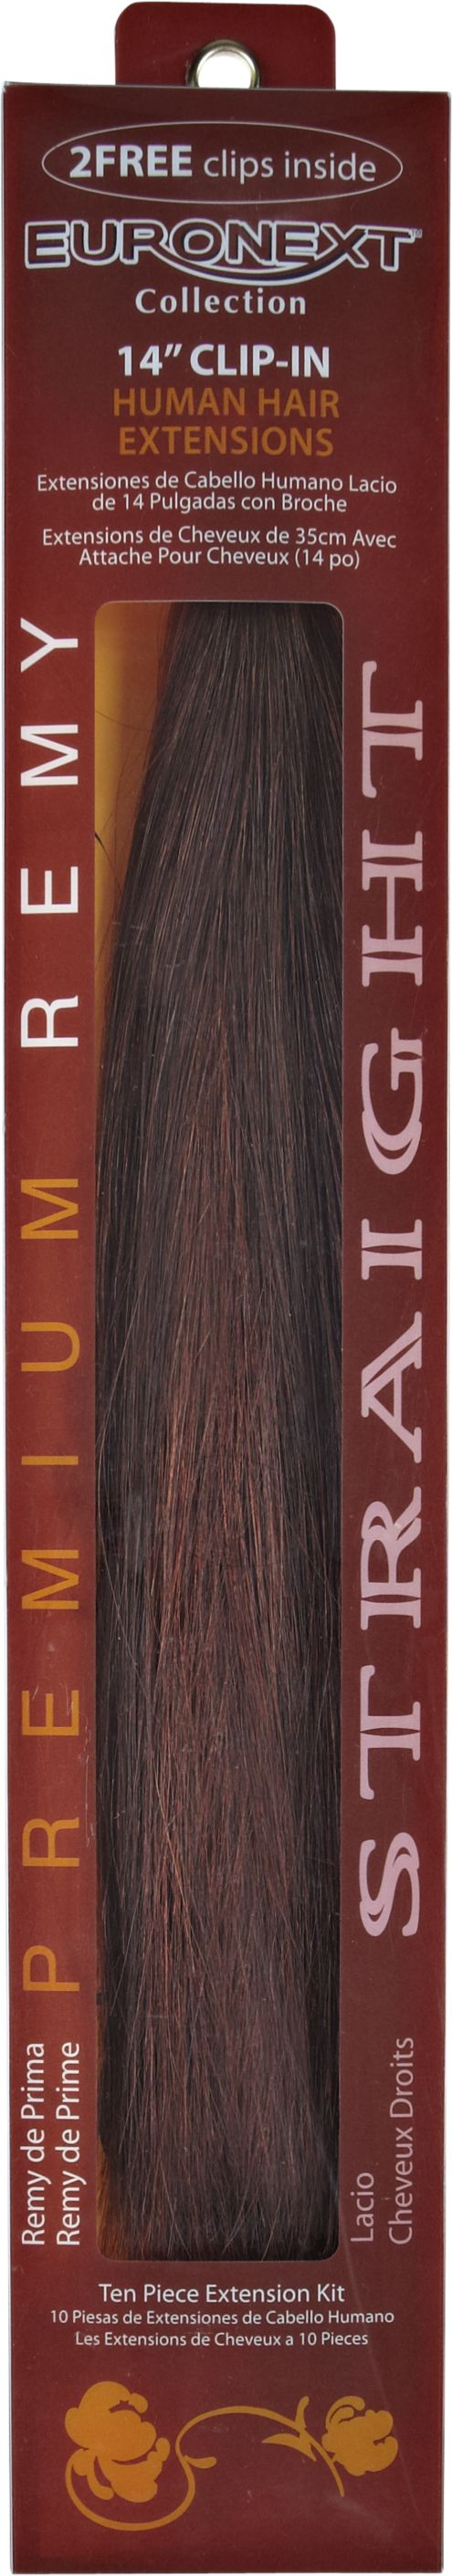 Euronext Hair Extensions 14 Inch 97